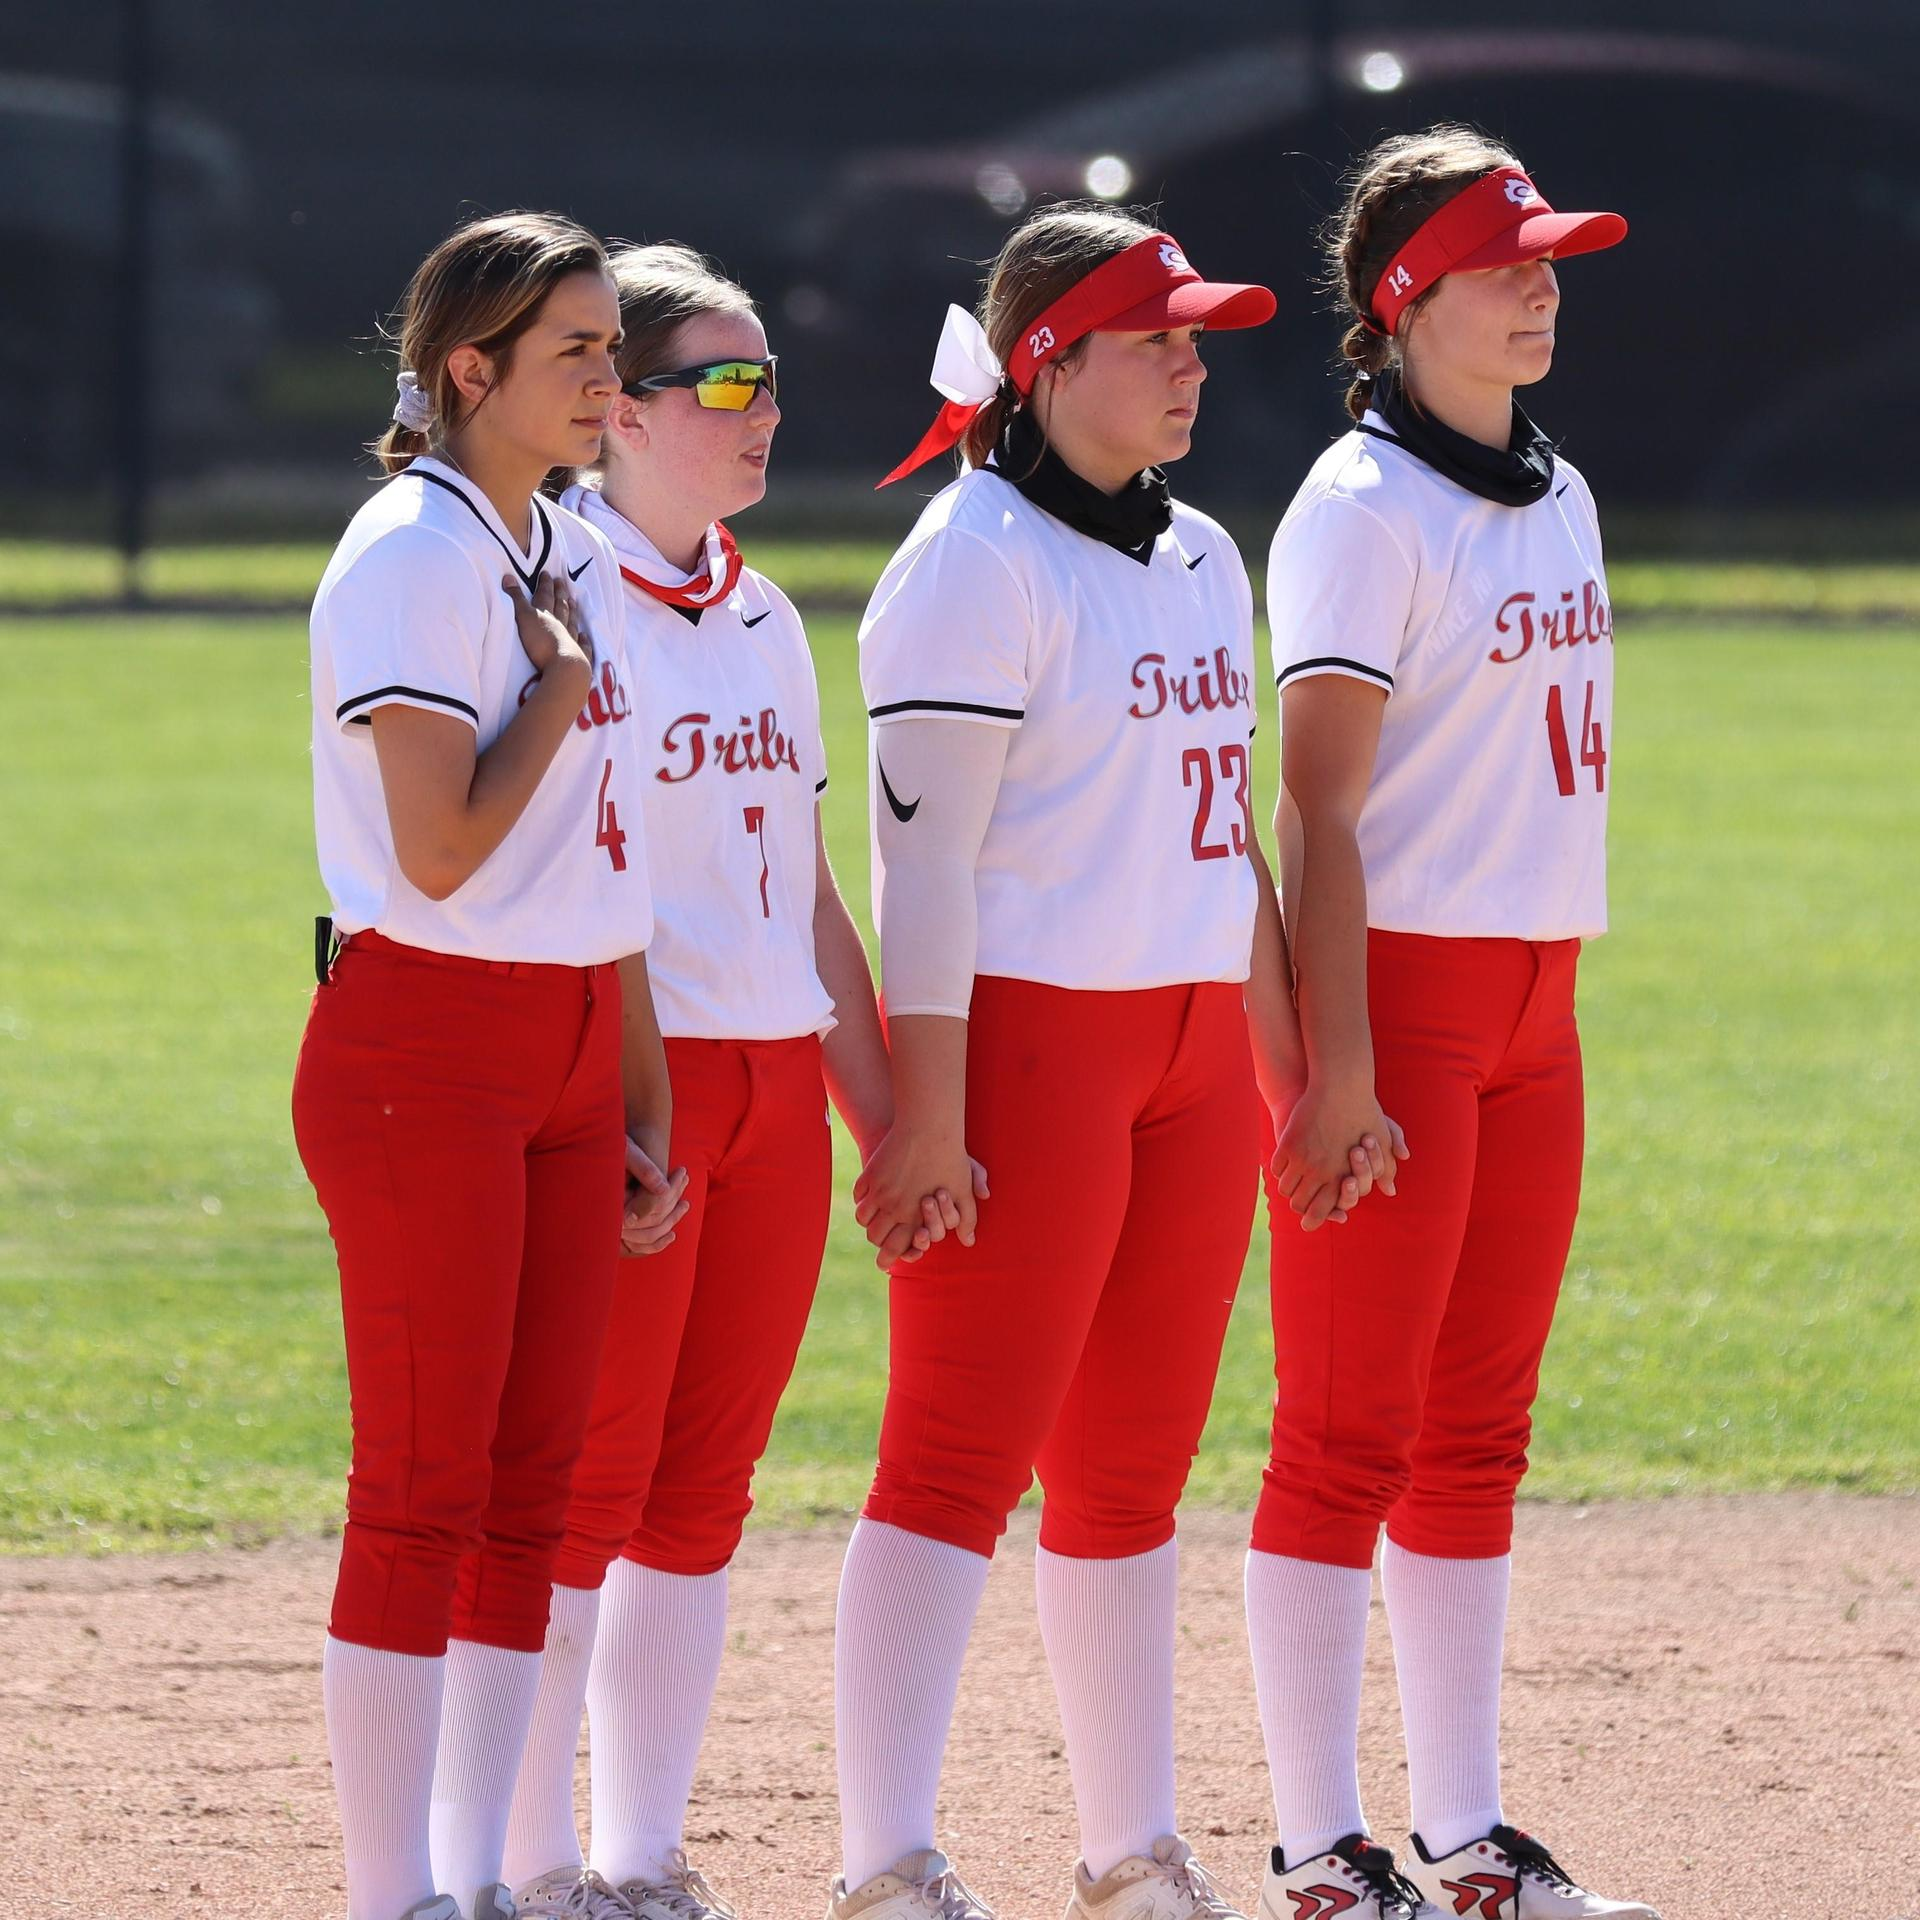 girls standing for the National Anthem before playing softball